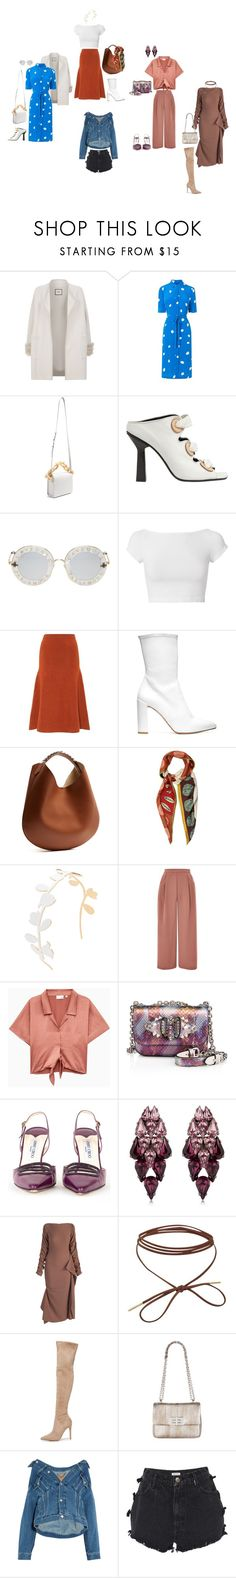 """""""me and aghhhhh"""" by yusufbudiman on Polyvore featuring Max & Moi, L.K.Bennett, Marques'Almeida, J.W. Anderson, Gucci, Helmut Lang, Joseph, Stuart Weitzman, Givenchy and Valentino"""